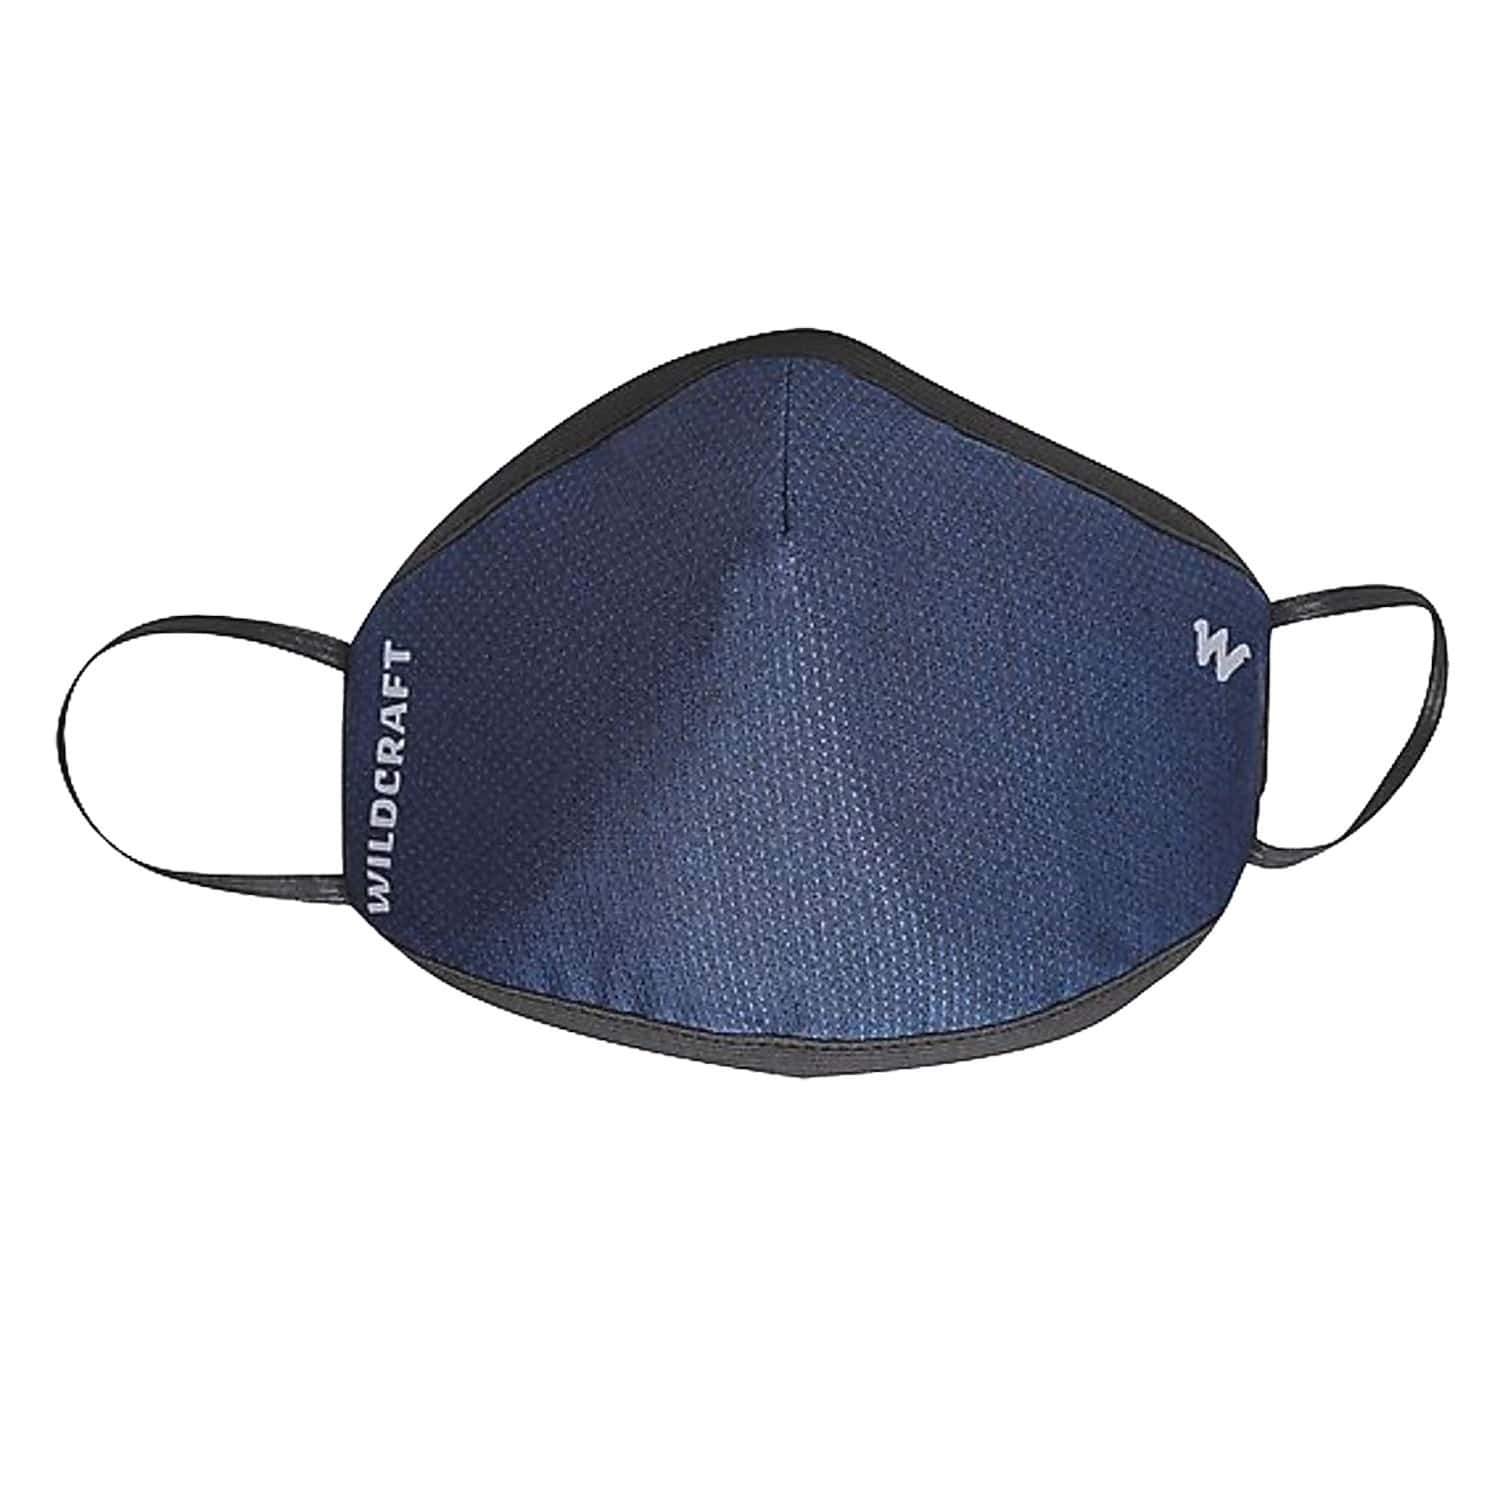 Wildcraft Supermask W95+ Reusable Outdoor Respirator Face Mask Anti-dust  Anti-bacterial   Anti-pollution- Size L (blue)